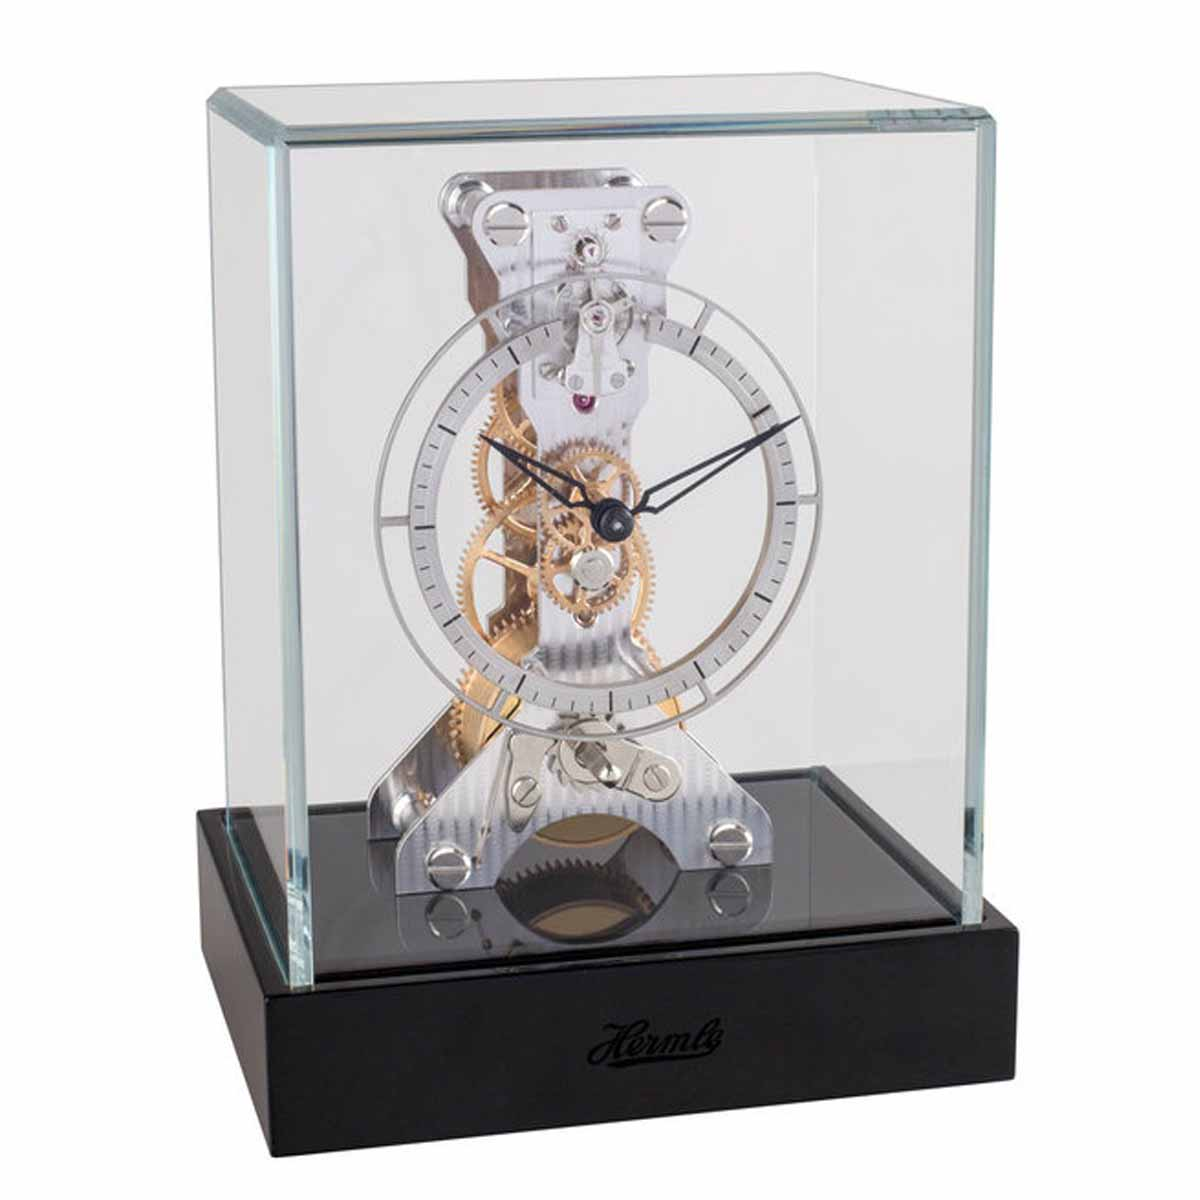 NESTON 23051-747762 Table Clock